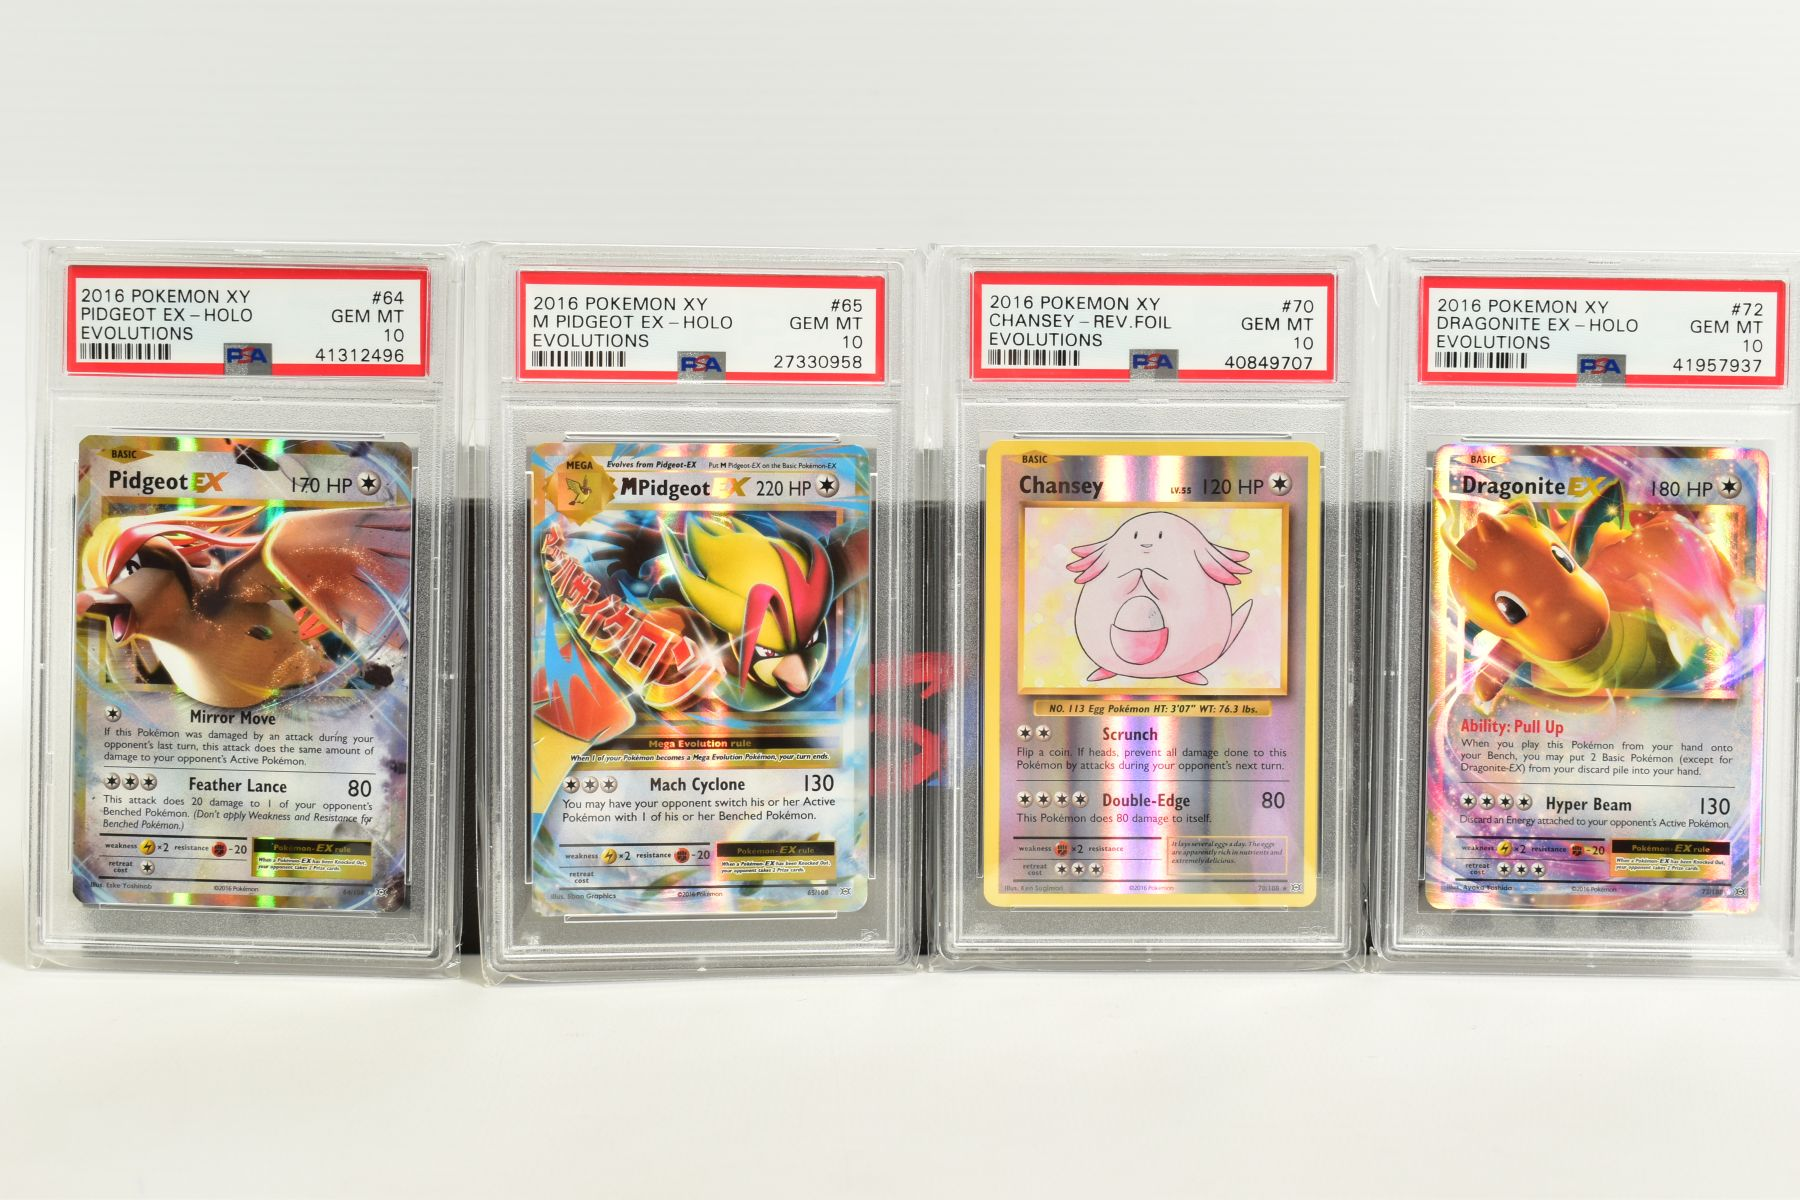 A QUANTITY OF PSA GRADED POKEMON XY EVOLUTIONS SET CARDS, all are graded GEM MINT 10 and are - Image 5 of 10